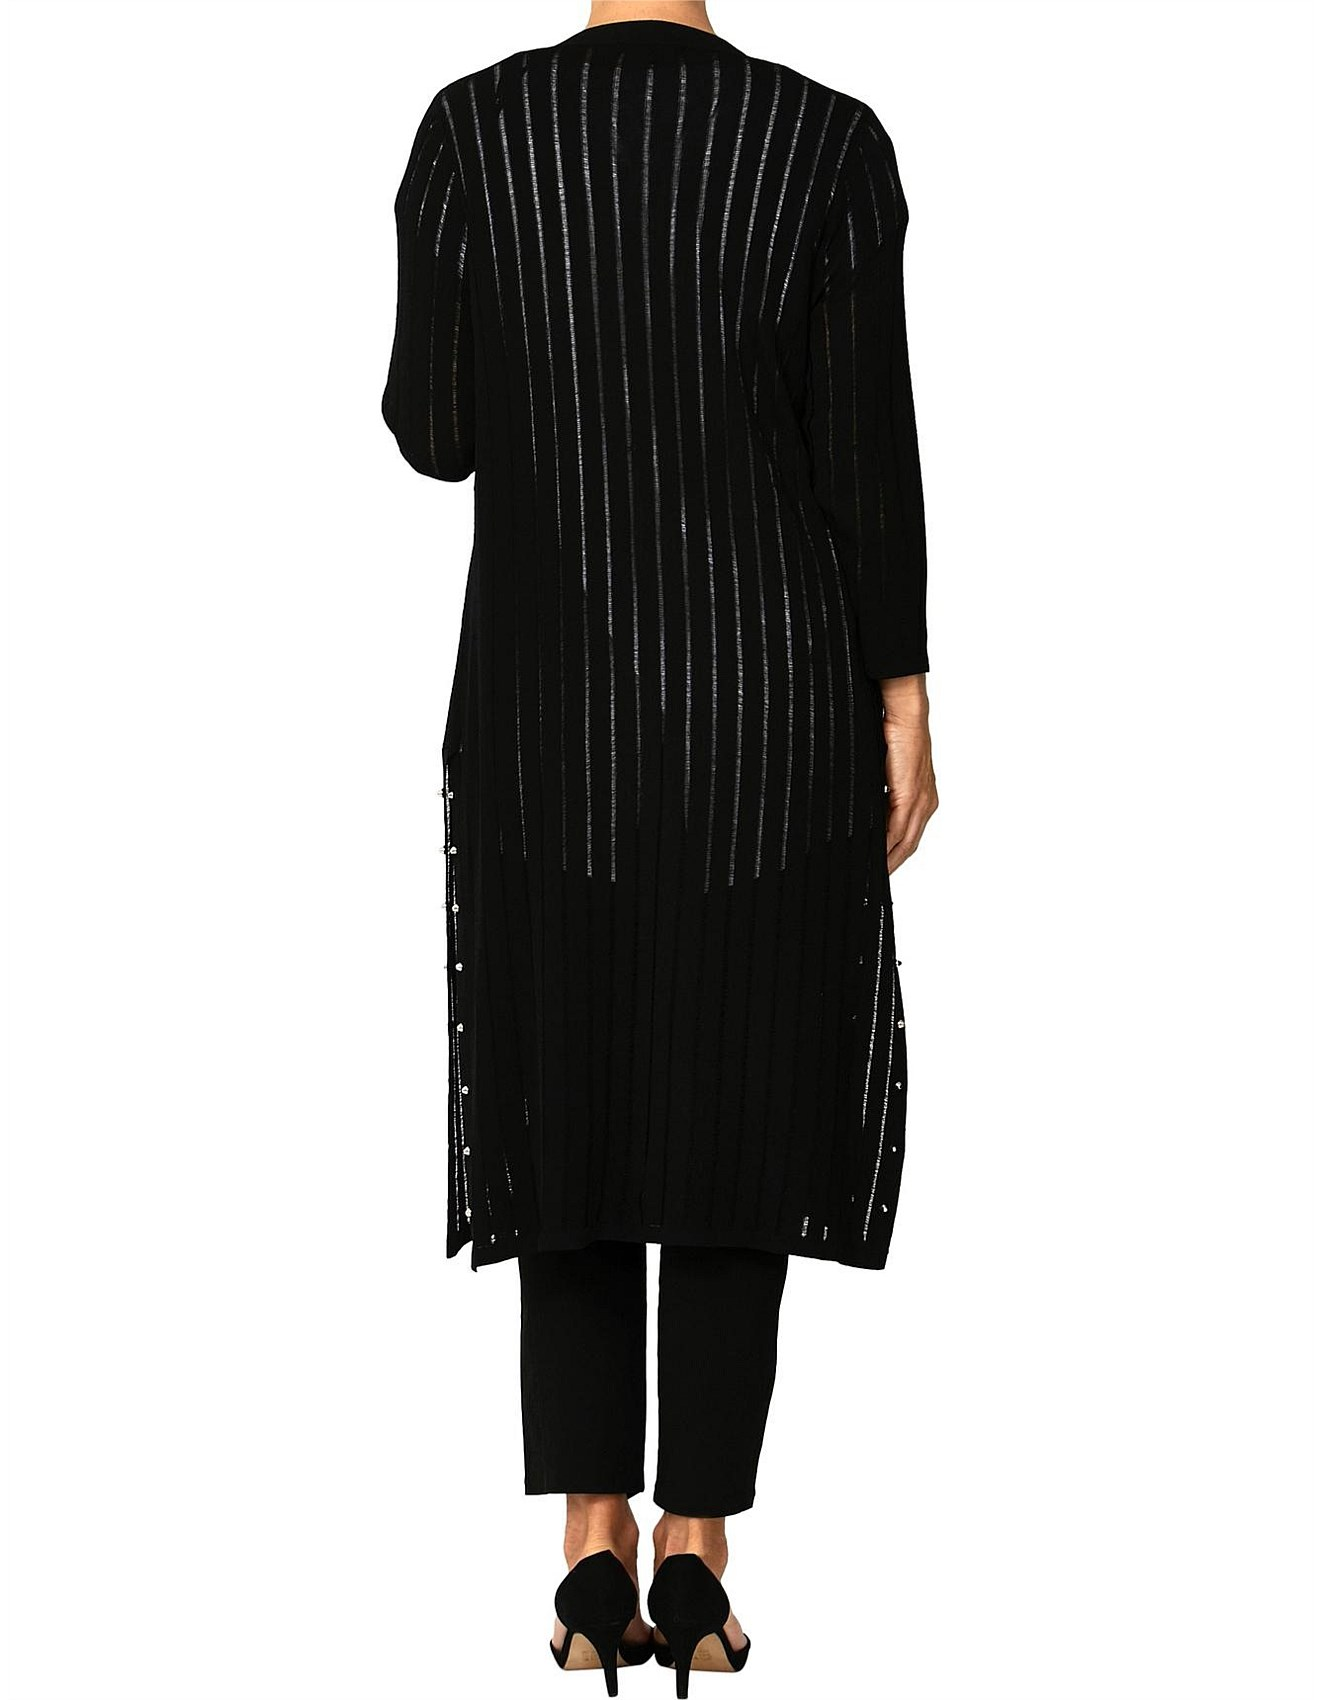 848e06eb62 Long Line Stud Trim Cardigan. 1